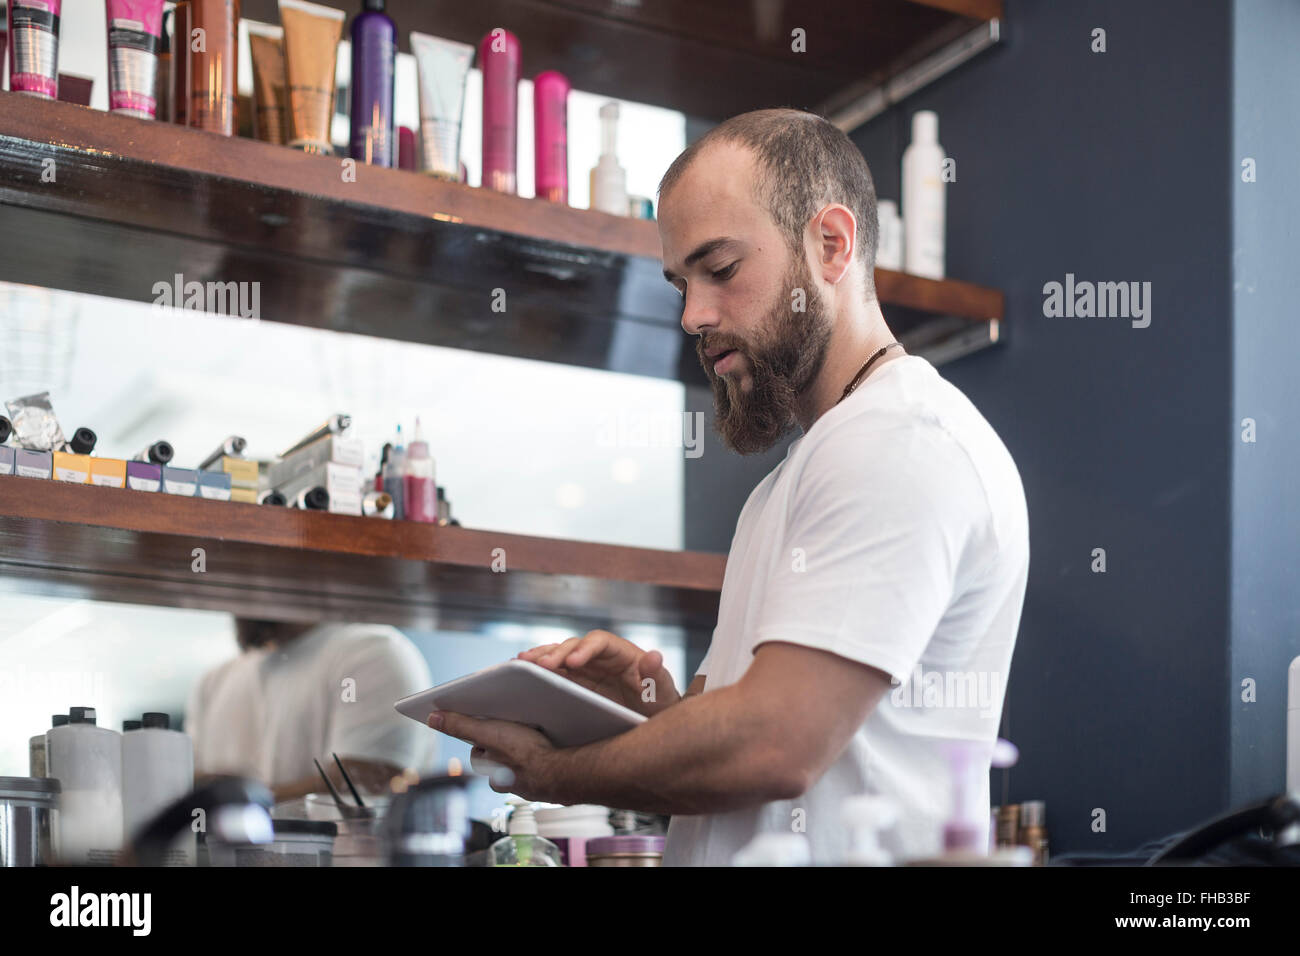 Barber doing shop inventory with digital tablet - Stock Image